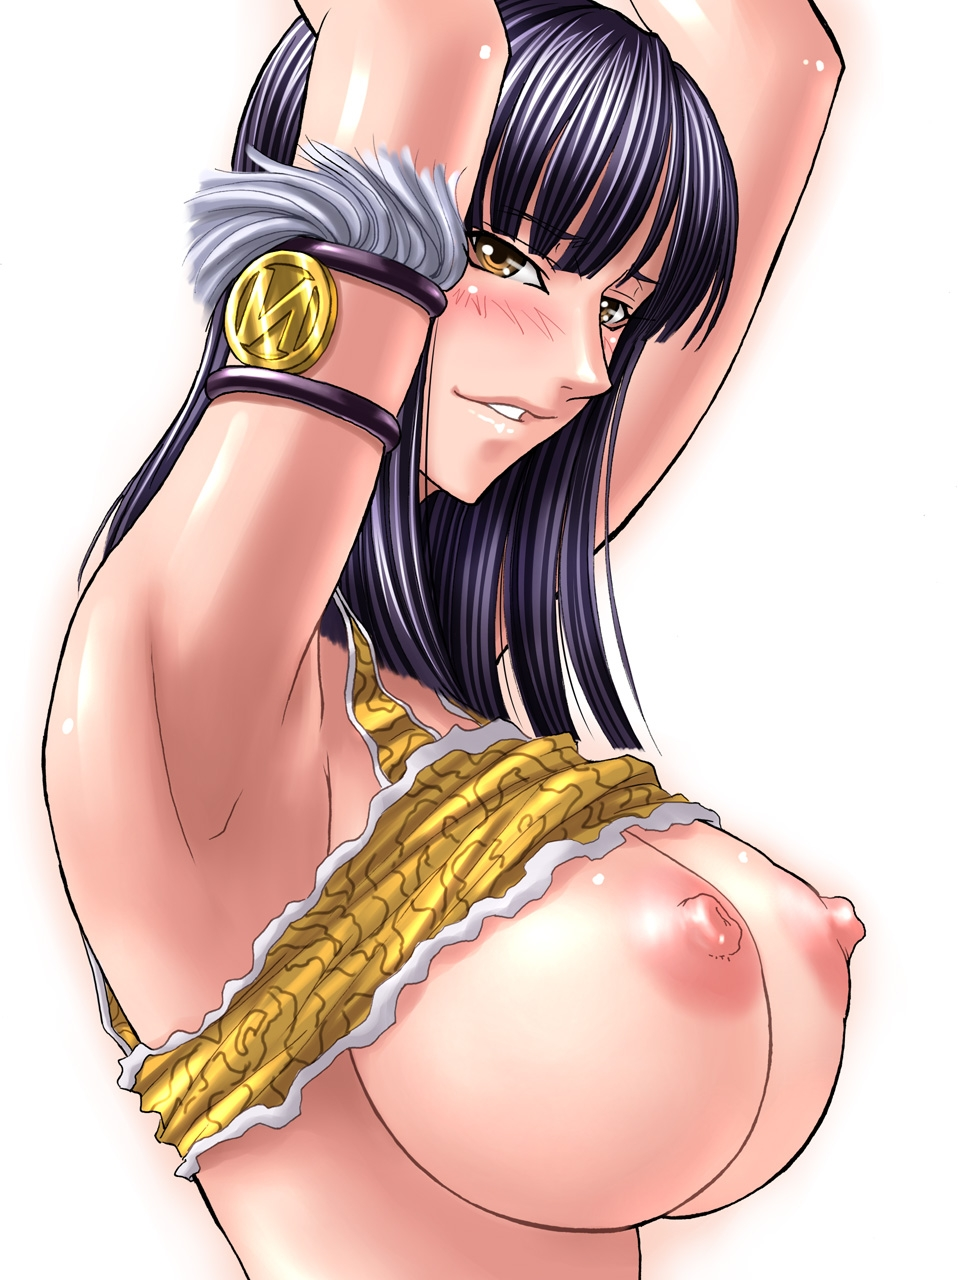 Toon sex pic ##000130292026 female 6942 areolae arms up black hair blush breasts erect nipples female highres huge breasts kagami large breasts nico robin nipples one piece shirt lift short hair solo utility pole spirit yellow eyess